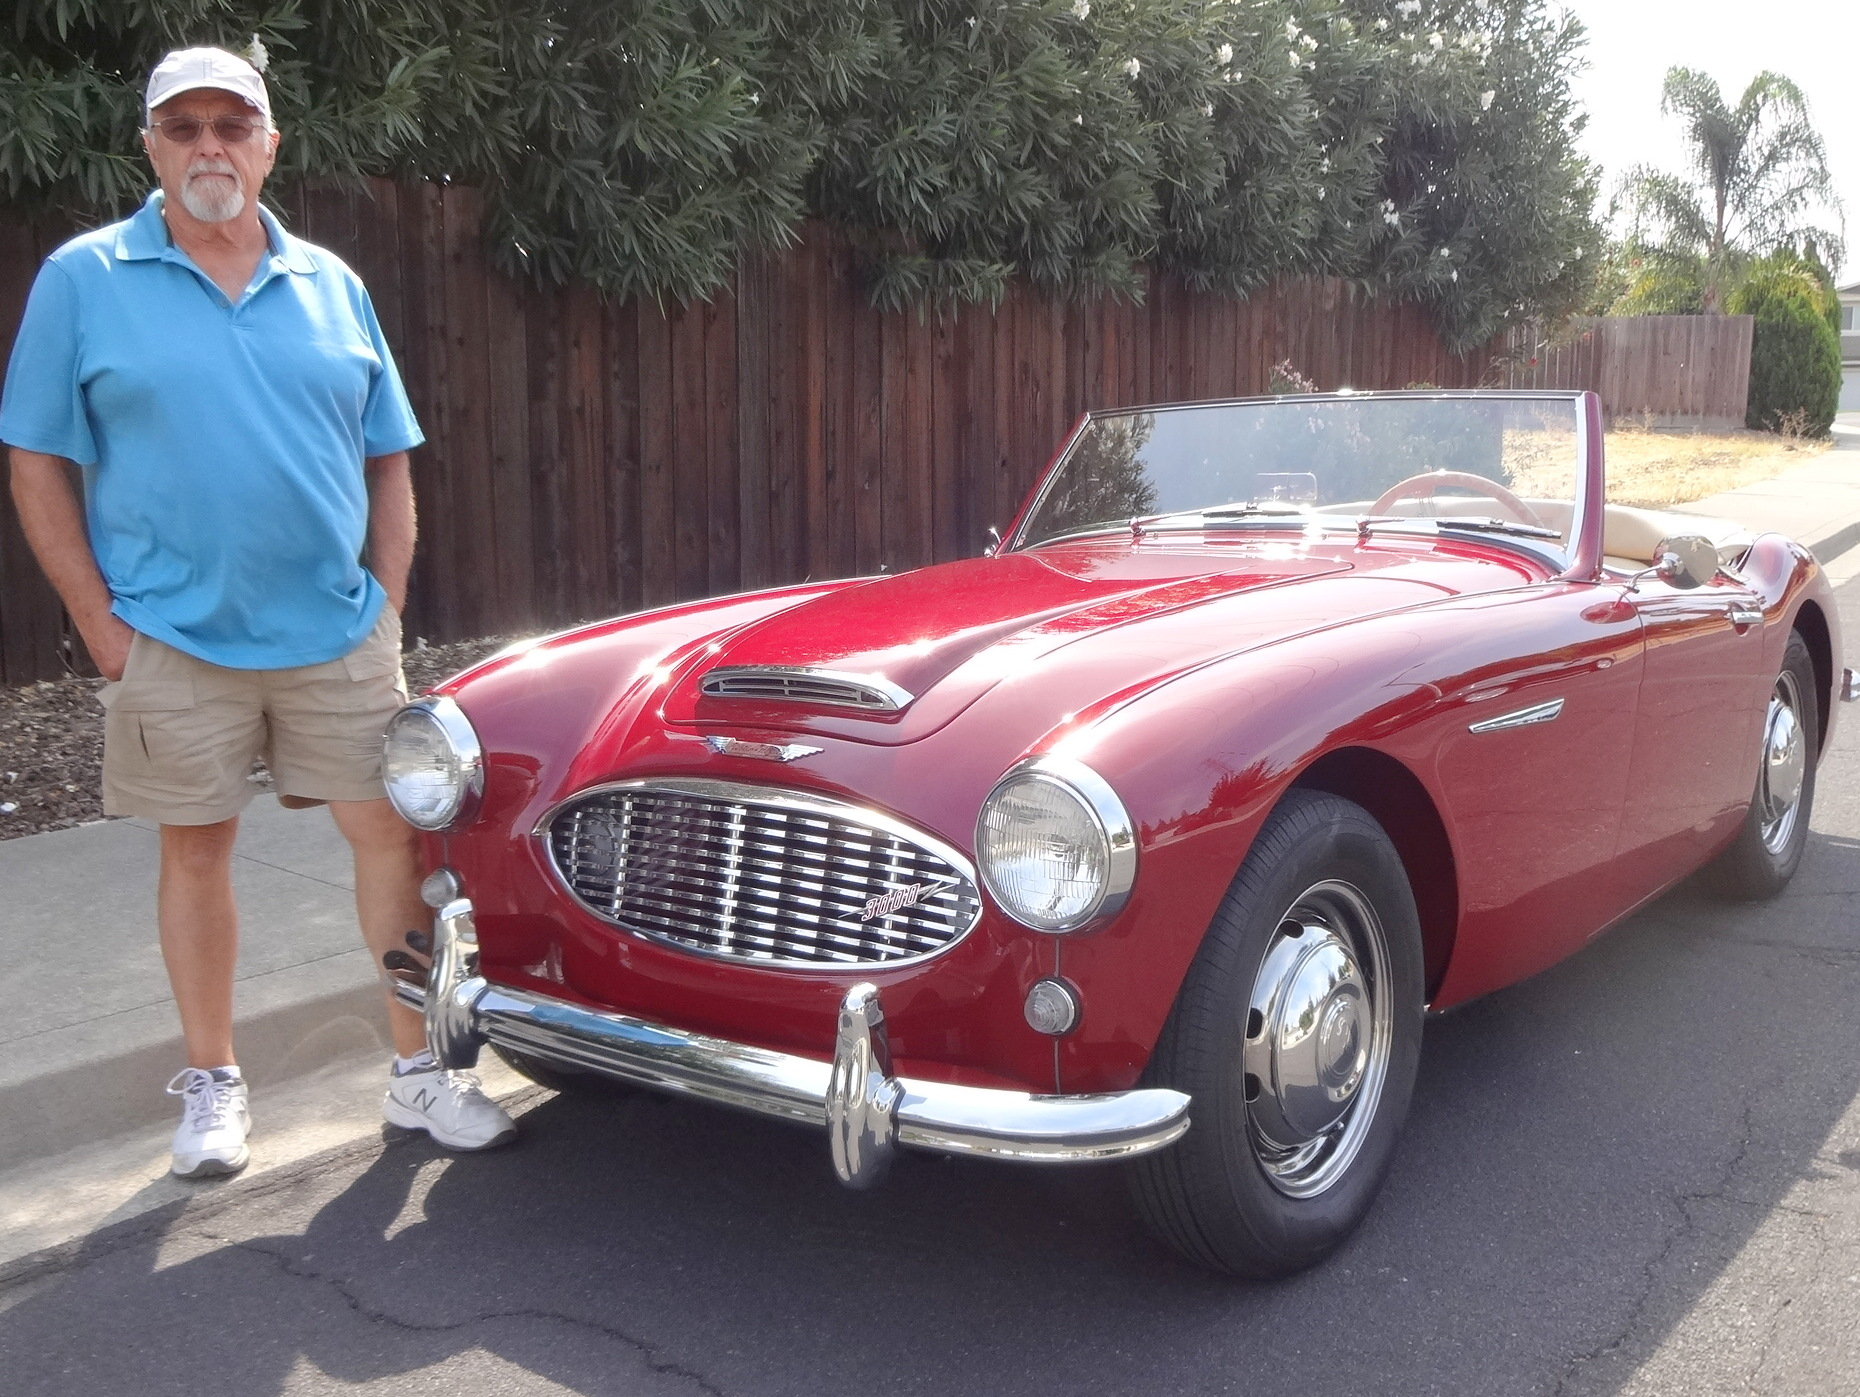 Me   My Car   61 Austin Healey restored from  mess  Pete Davies of Antioch shows his fully restored 1961 Austin Healey 3000  Mark I   Photo by David Krumboltz